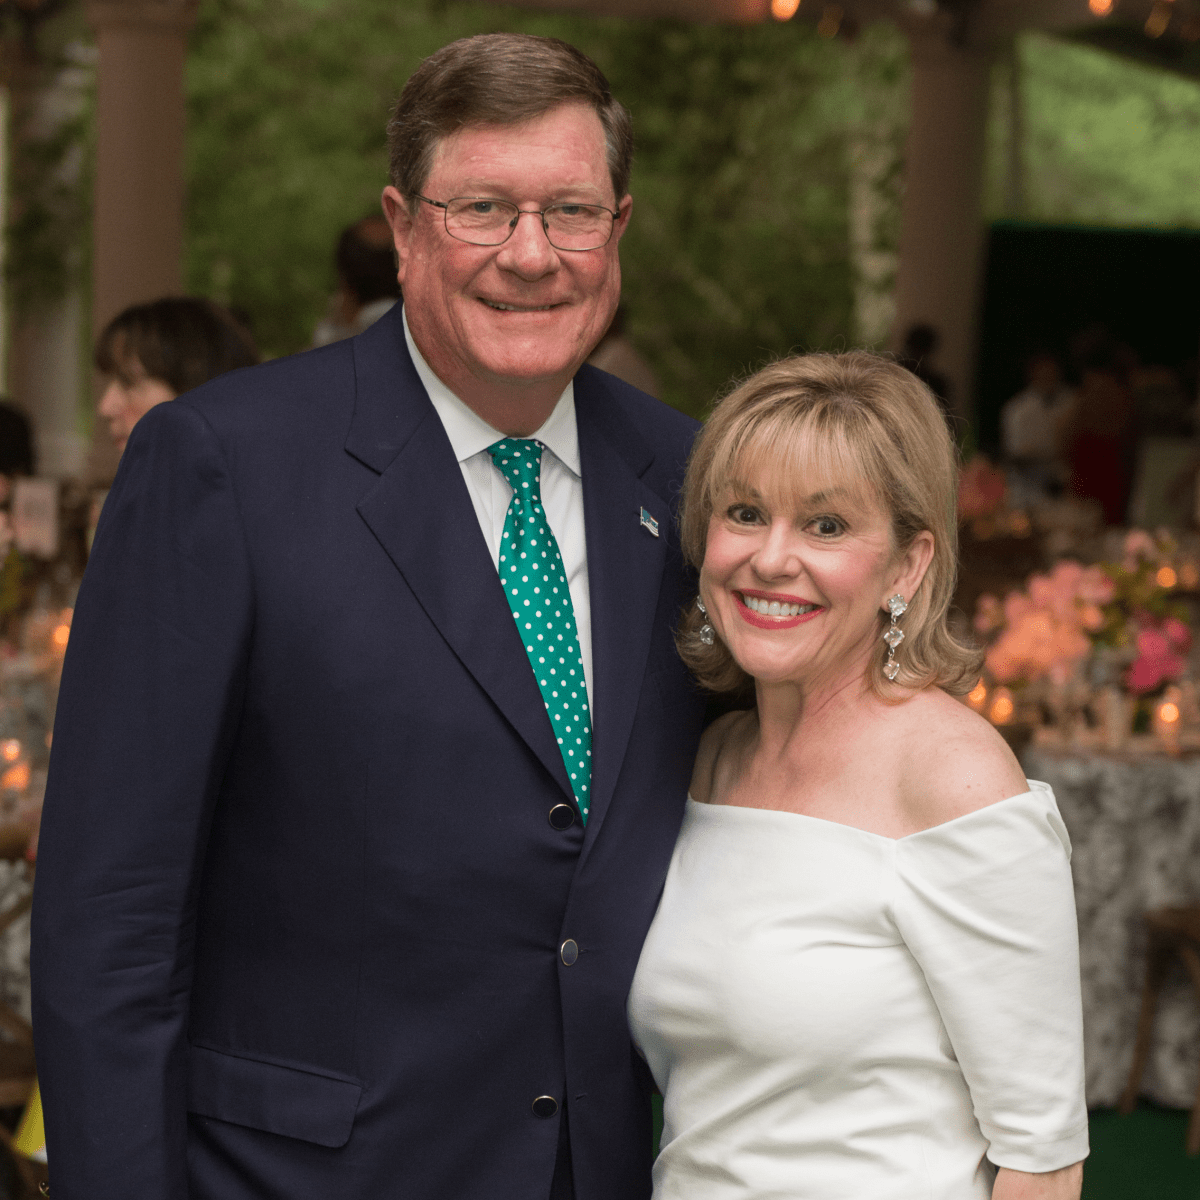 Jim and Sharyn Weaver at Bayou Bend Garden Party